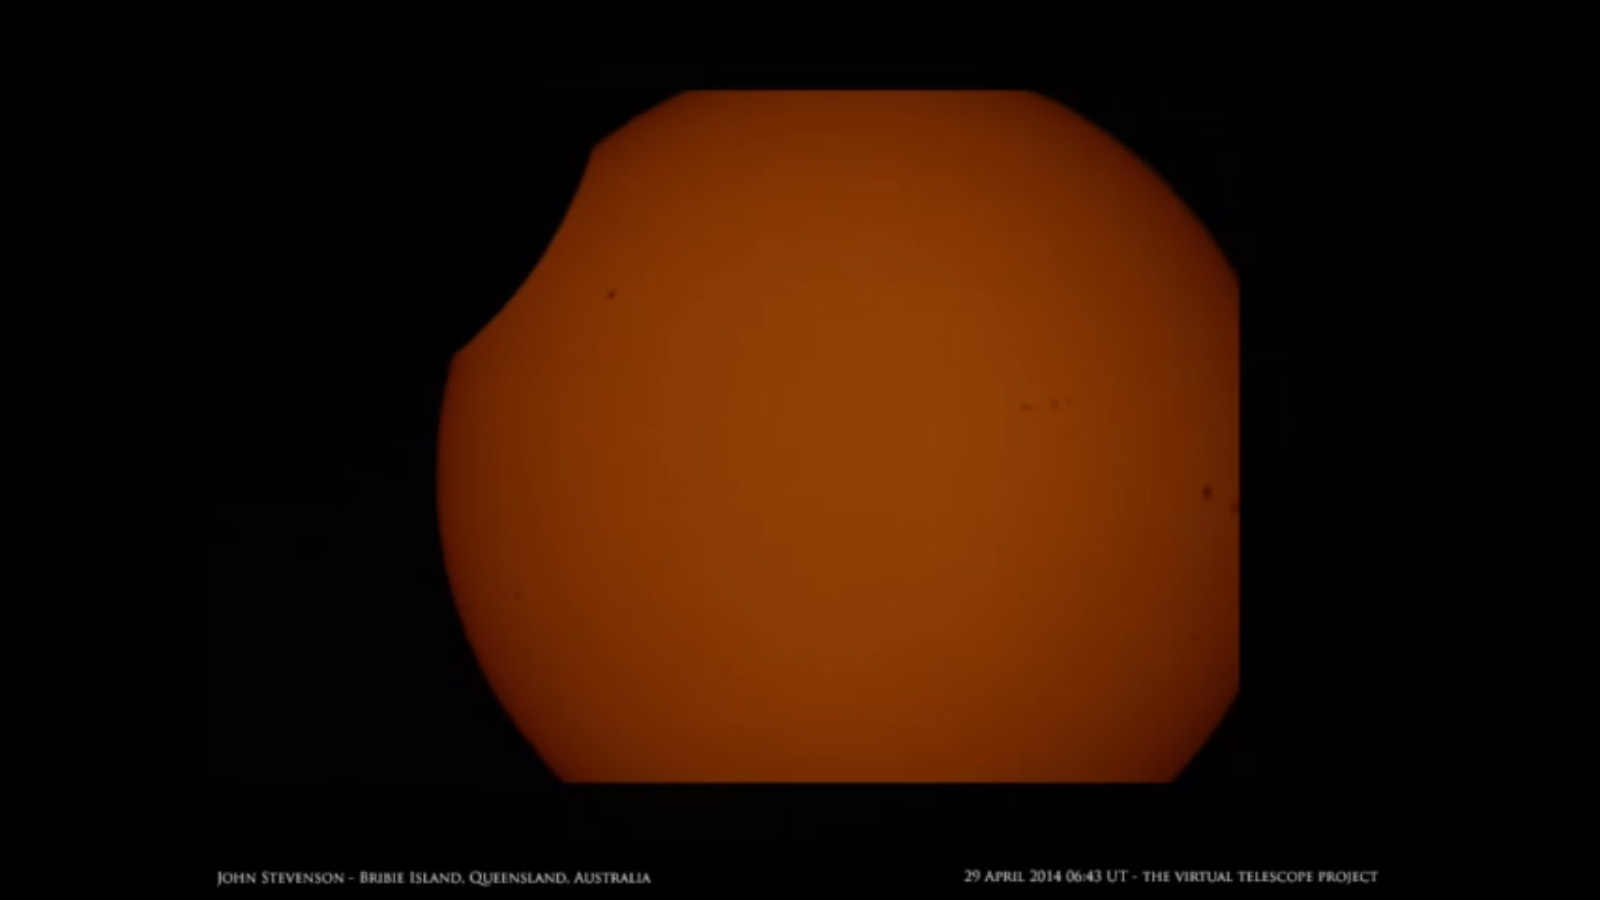 Solar Eclipse and Sunspots: John Stevenson on April 29